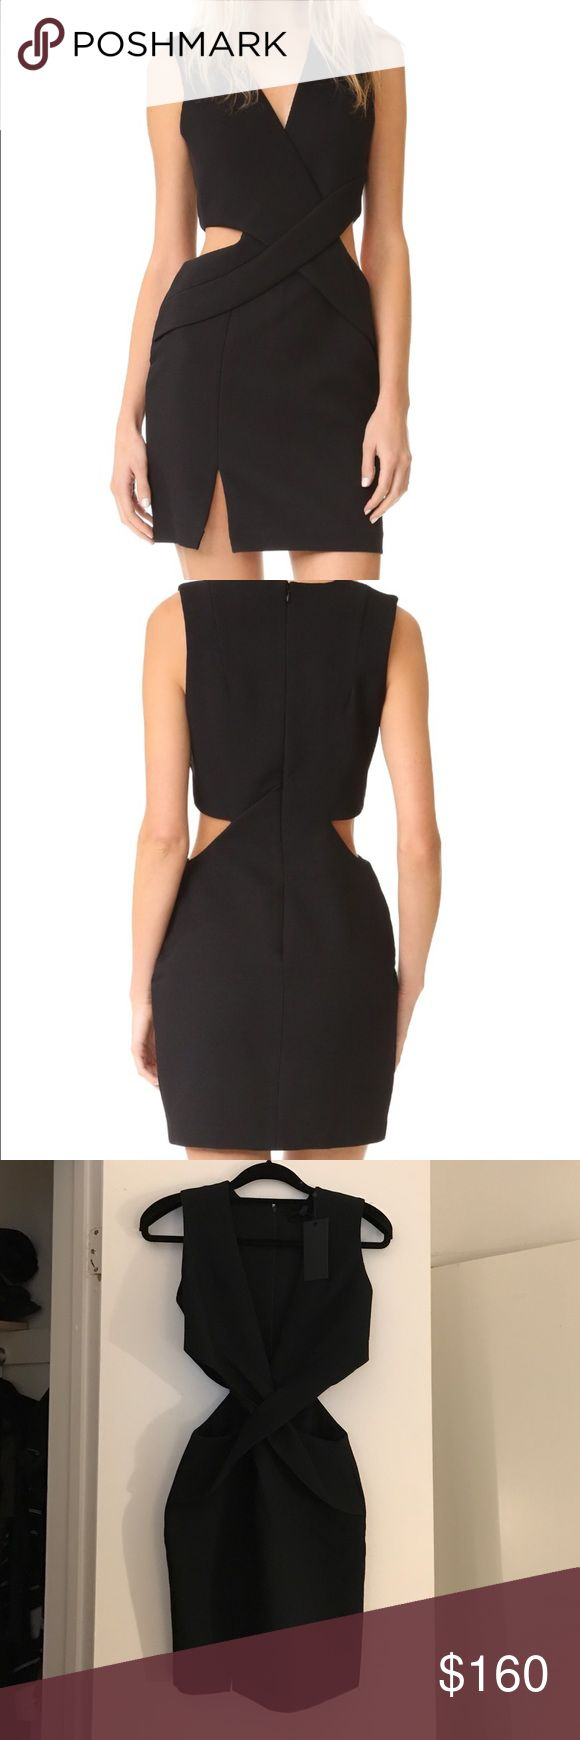 Kendal + Kylie Deep Plunge Cutout Dress in black BRAND NEW NEVER WORN. Black dress, new with tags XS. Crossover front panels and side cutouts lend a wrapped effect to this tailored KENDALL + KYLIE dress. Plunging V neckline. Sleeveless. Hidden back zip. Lined.  Fabric: Plain weave. Shell: 96% polyester/4% spandex. Trim: 92% polyester/8% spandex. Lining: 100% polyester. Wash cold or dry clean Kendall & Kylie Dresses